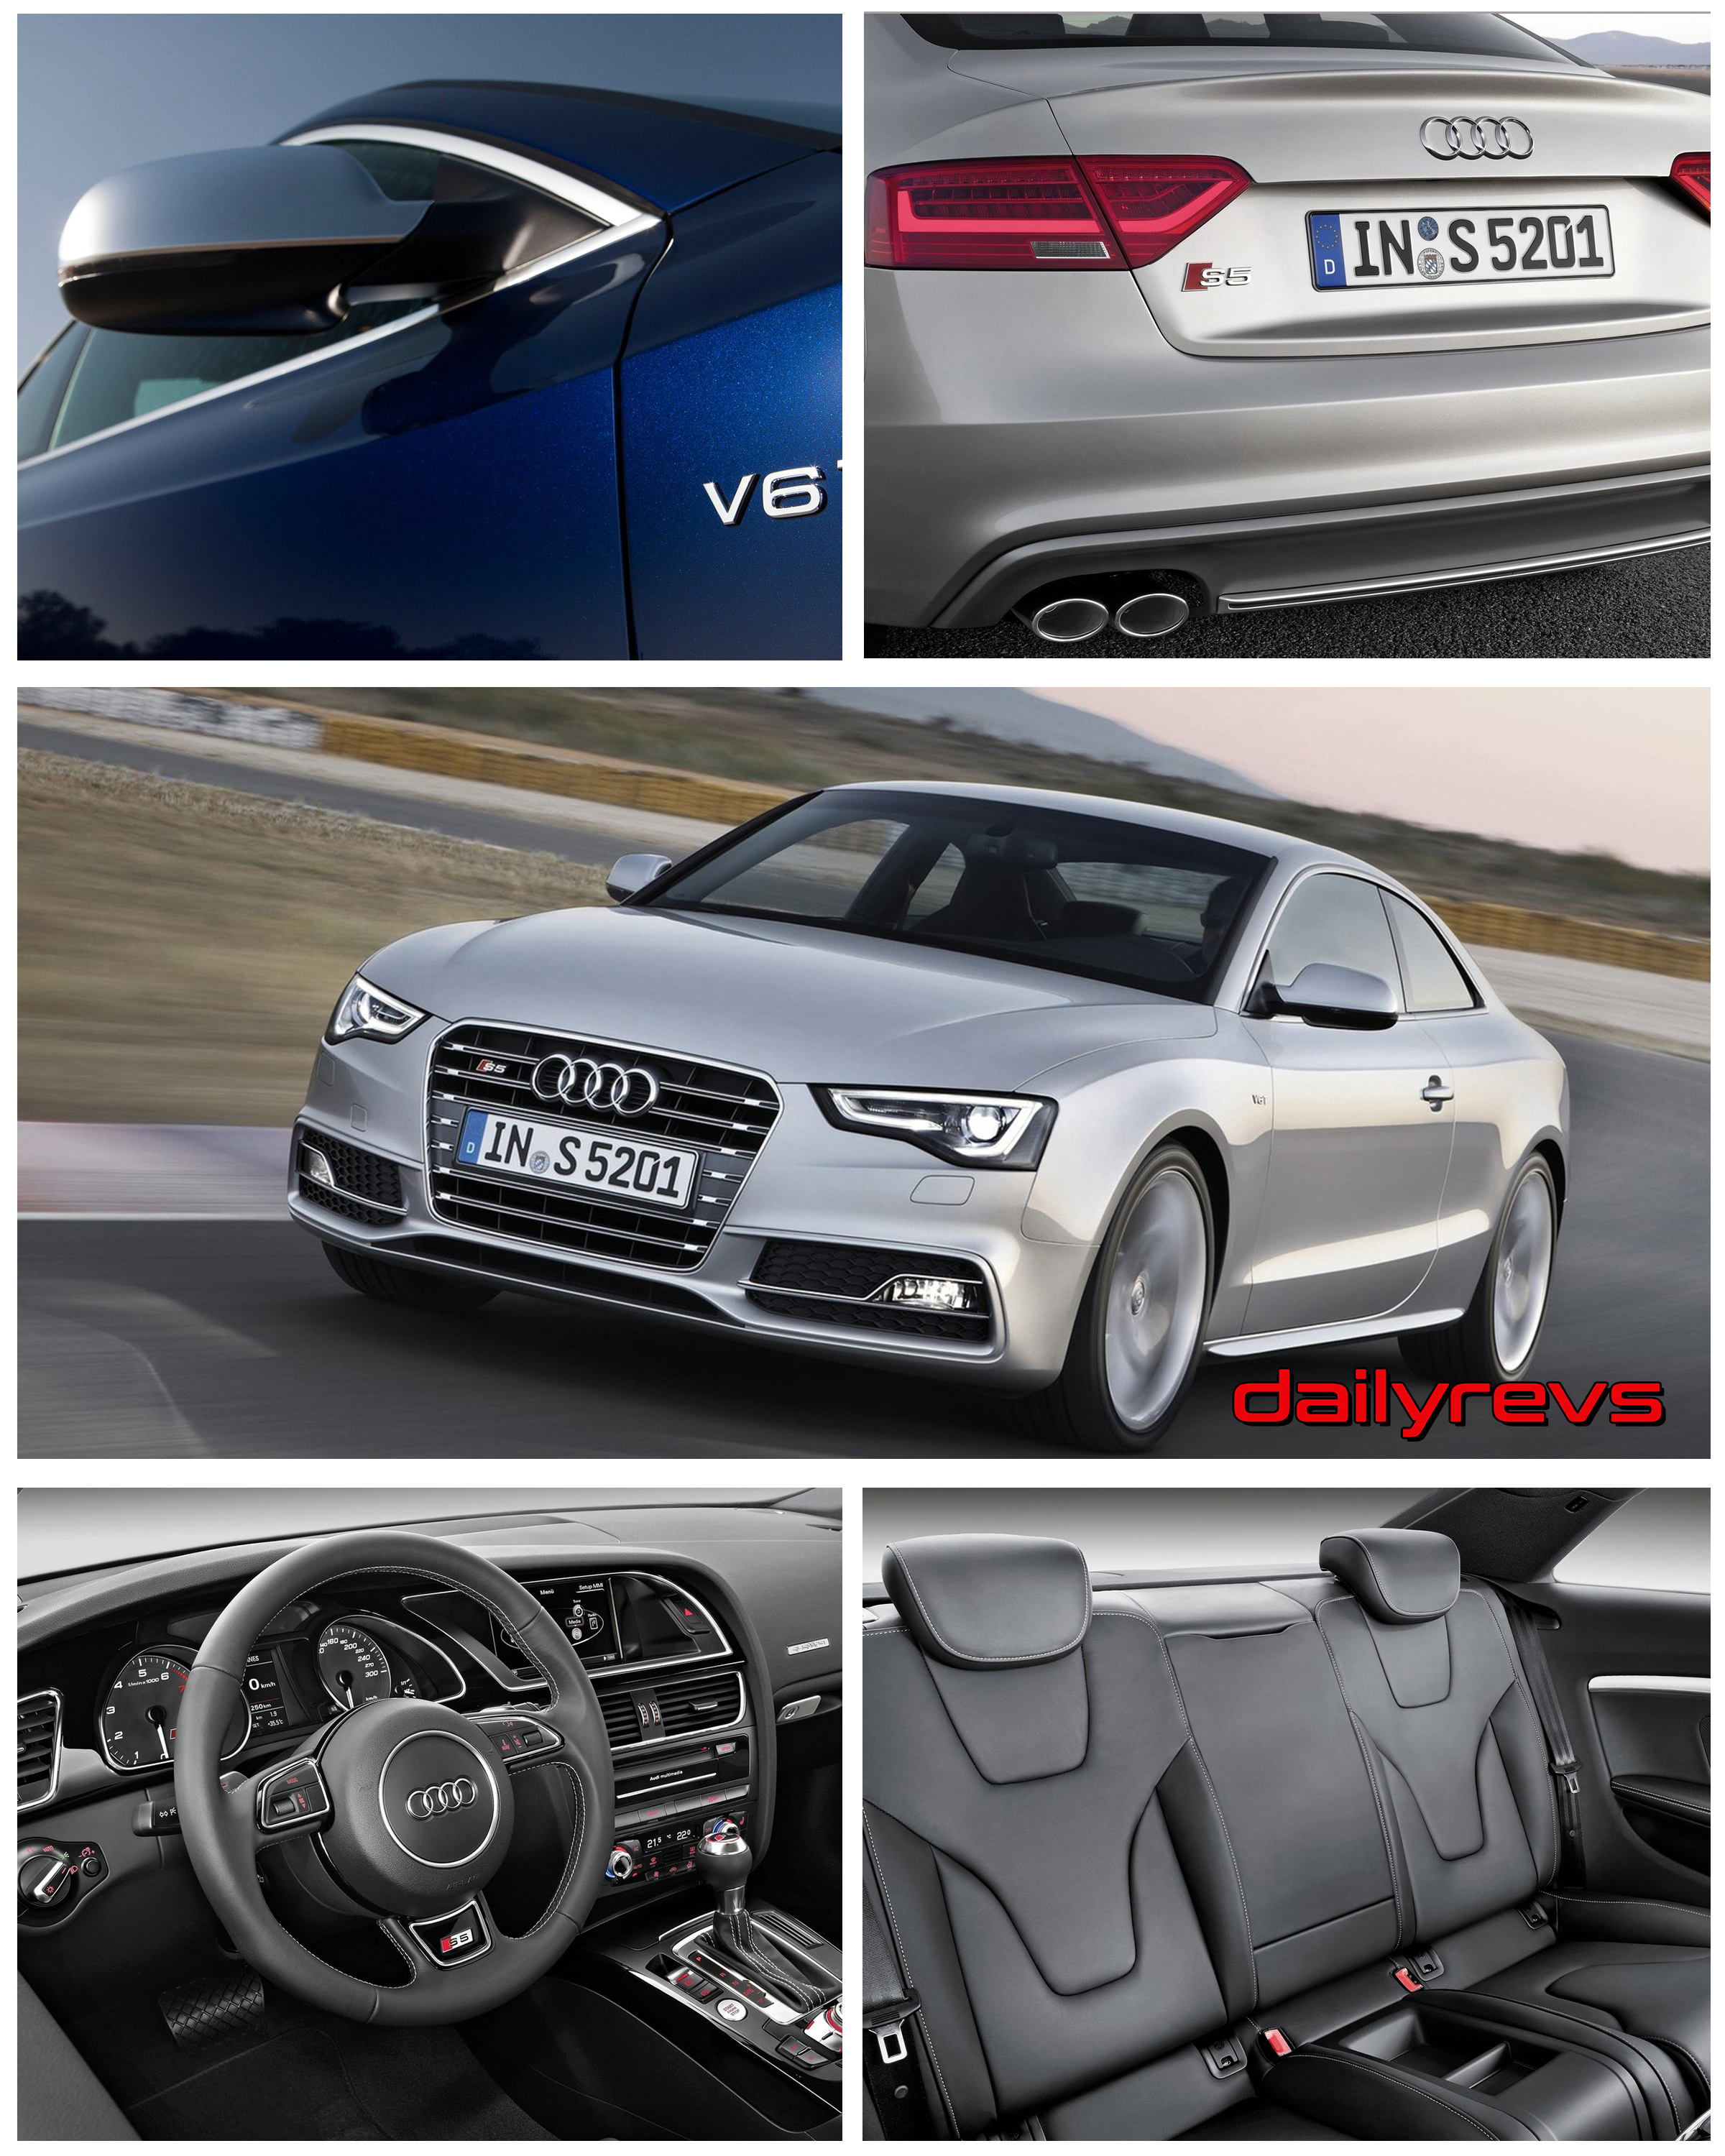 2012 Audi S5 Hd Pictures Videos Specs Informations Dailyrevs